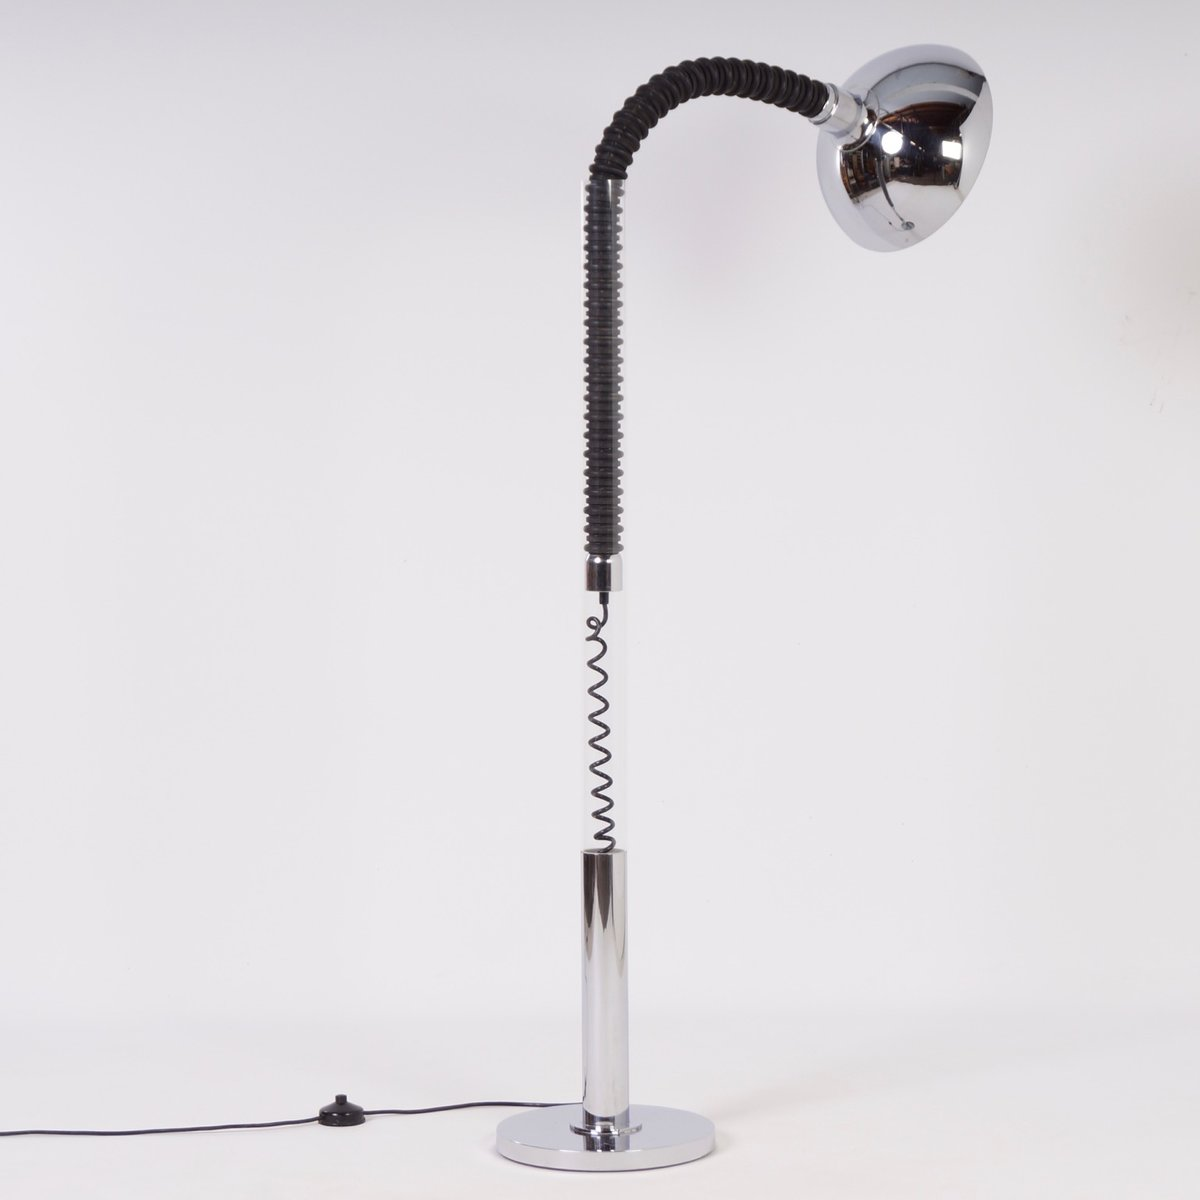 chrome floor lamp with flexible arm from cosack 1970s for sale at pamono. Black Bedroom Furniture Sets. Home Design Ideas